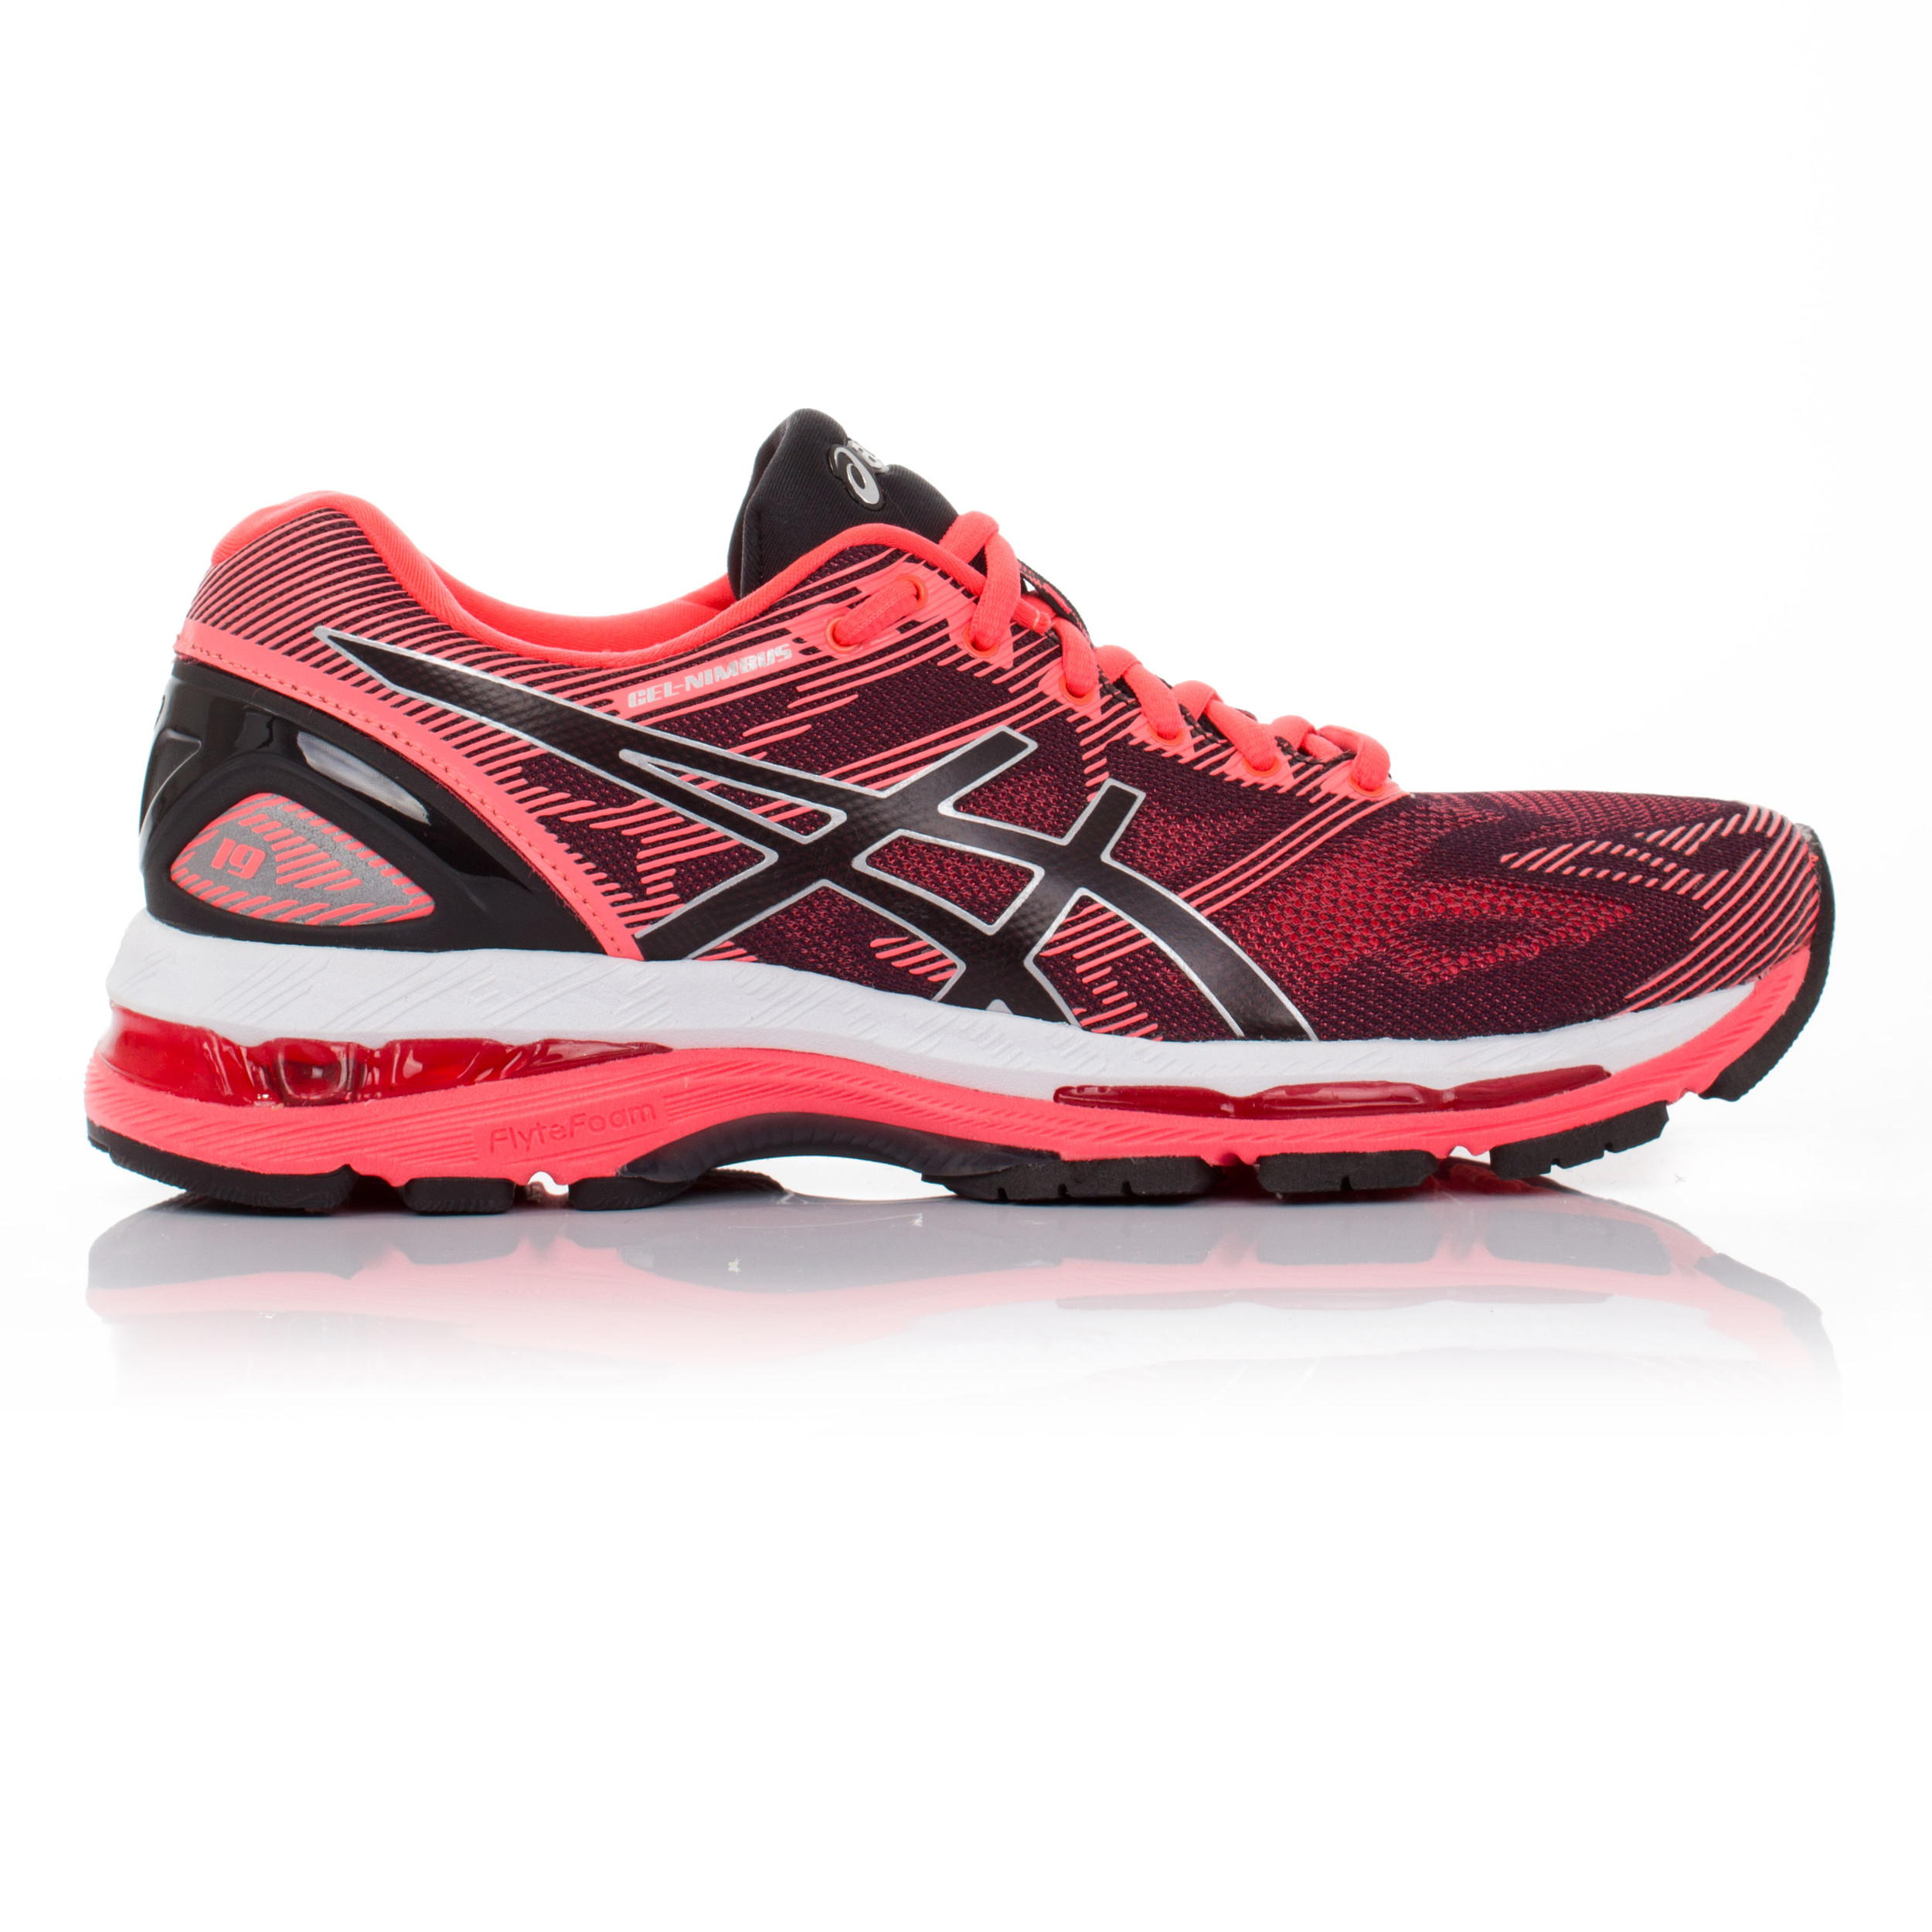 41a5ad828678 Details about Asics Gel Nimbus 19 Womens Pink Cushioned Running Road Shoes  Trainers